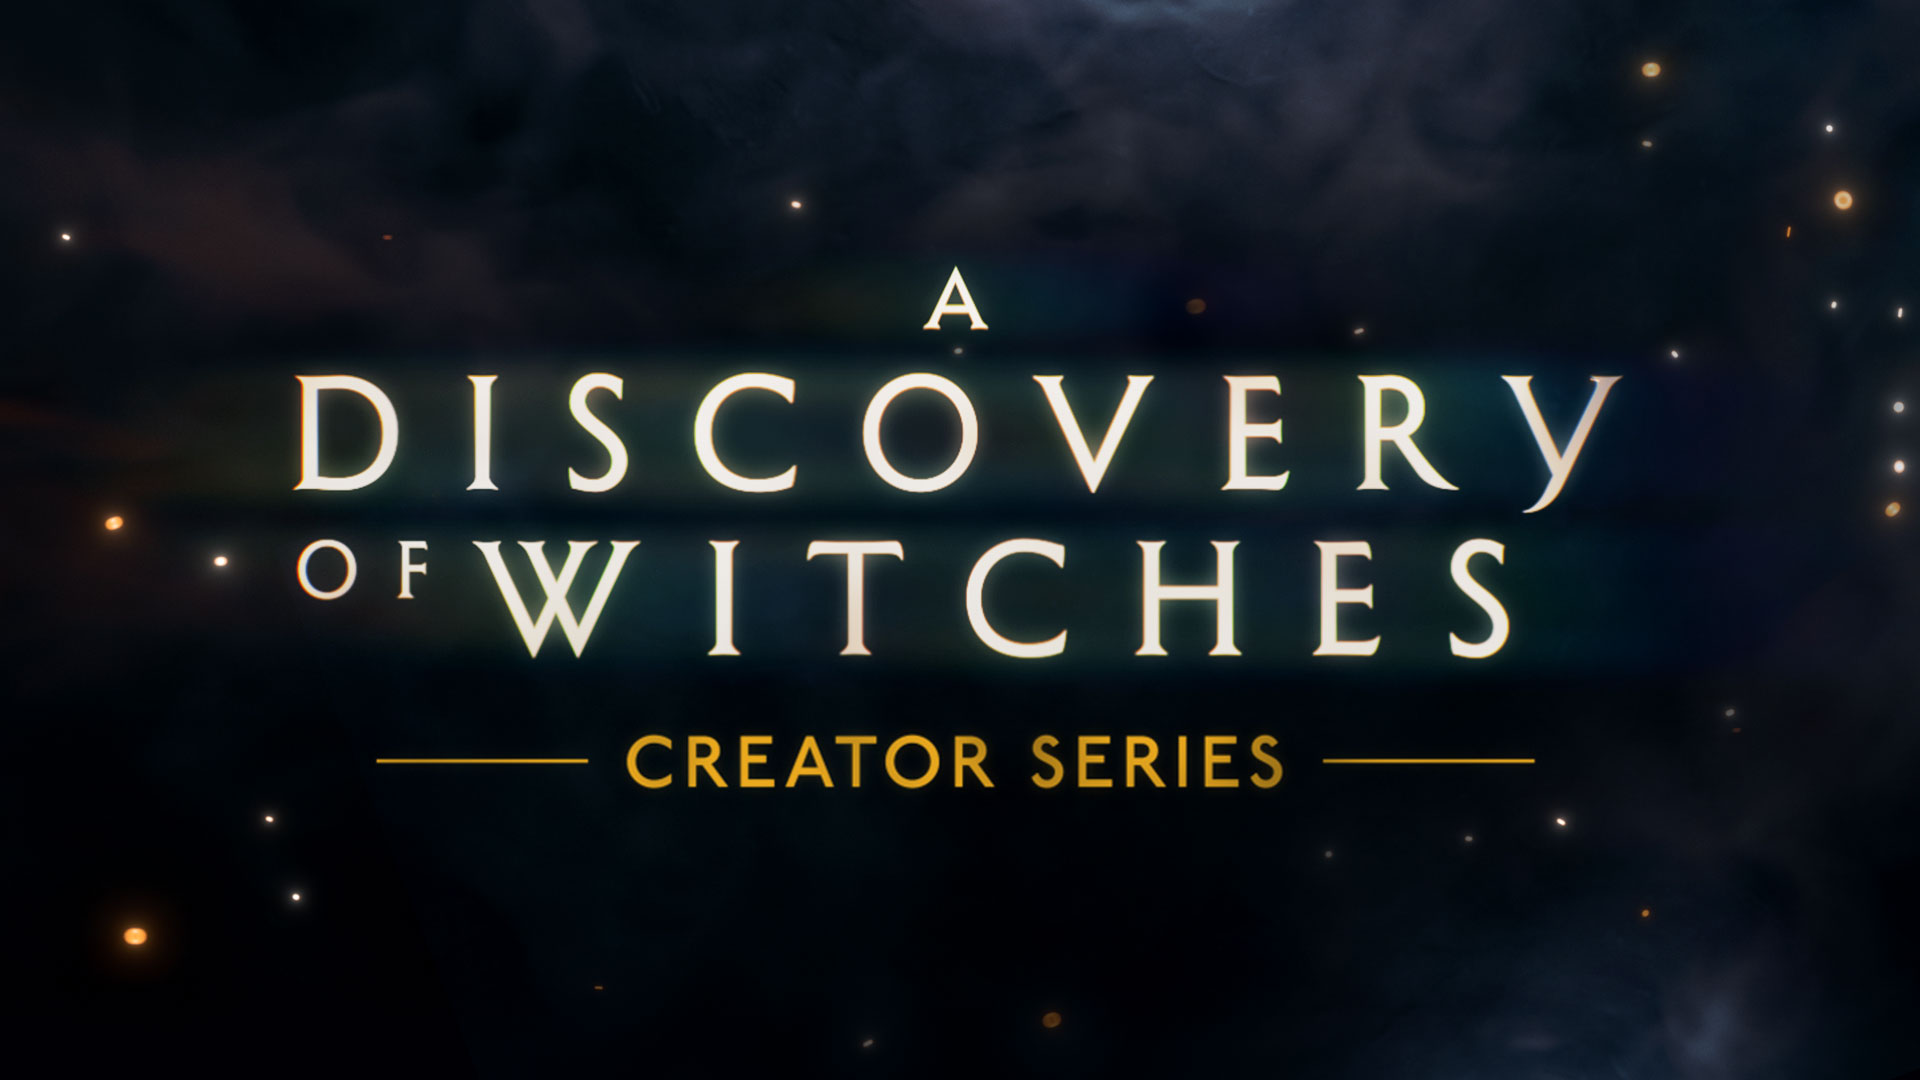 A Discovery of Witches Creator Series Season 1